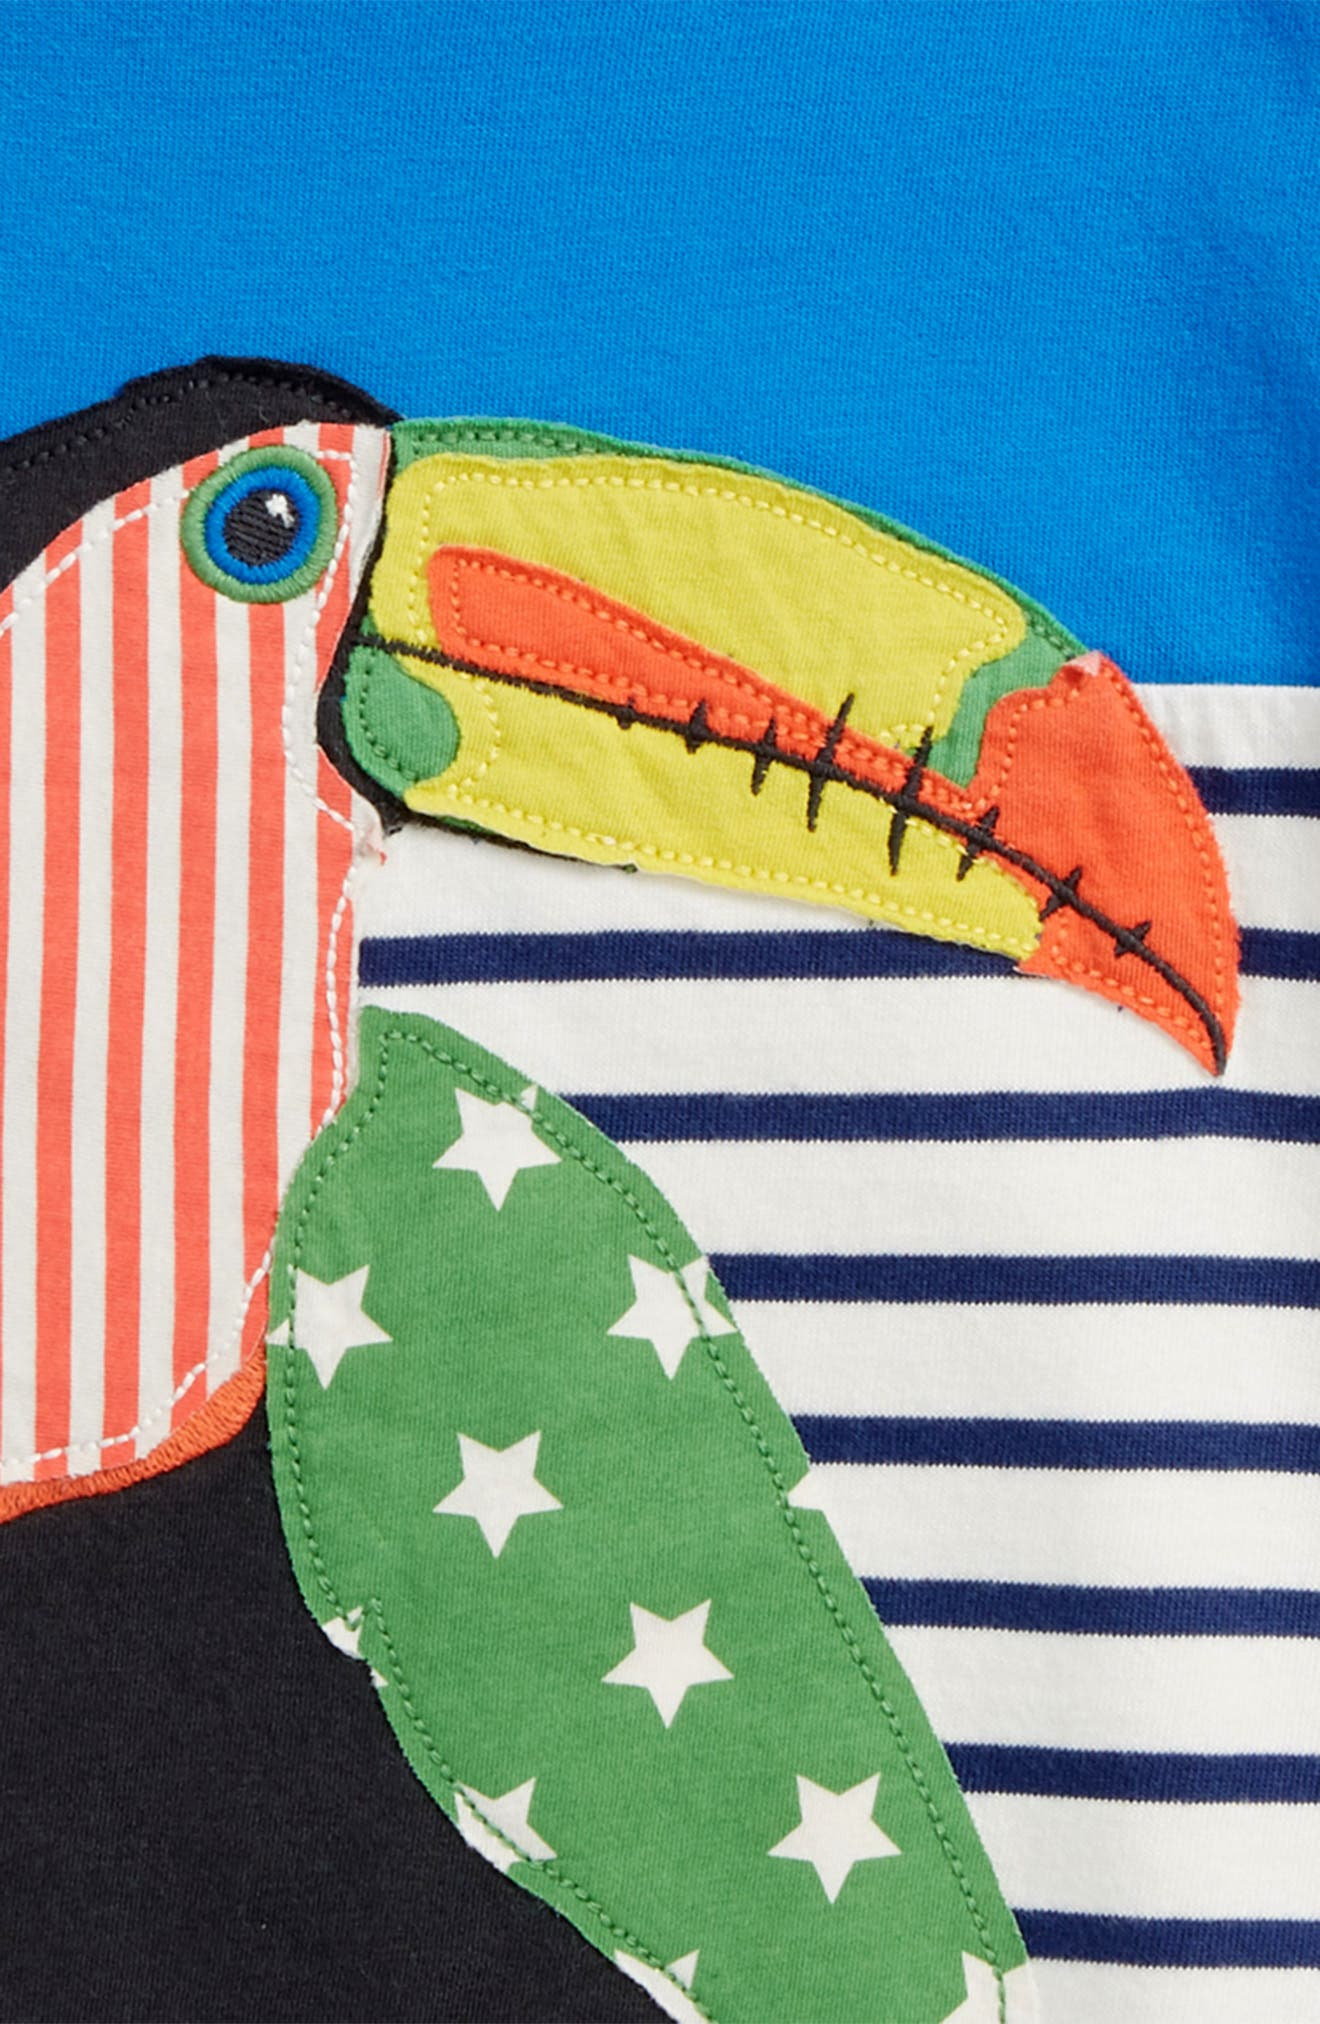 Toucan Stripe Appliqué T-Shirt,                             Alternate thumbnail 2, color,                             Yogo Blue Toucan